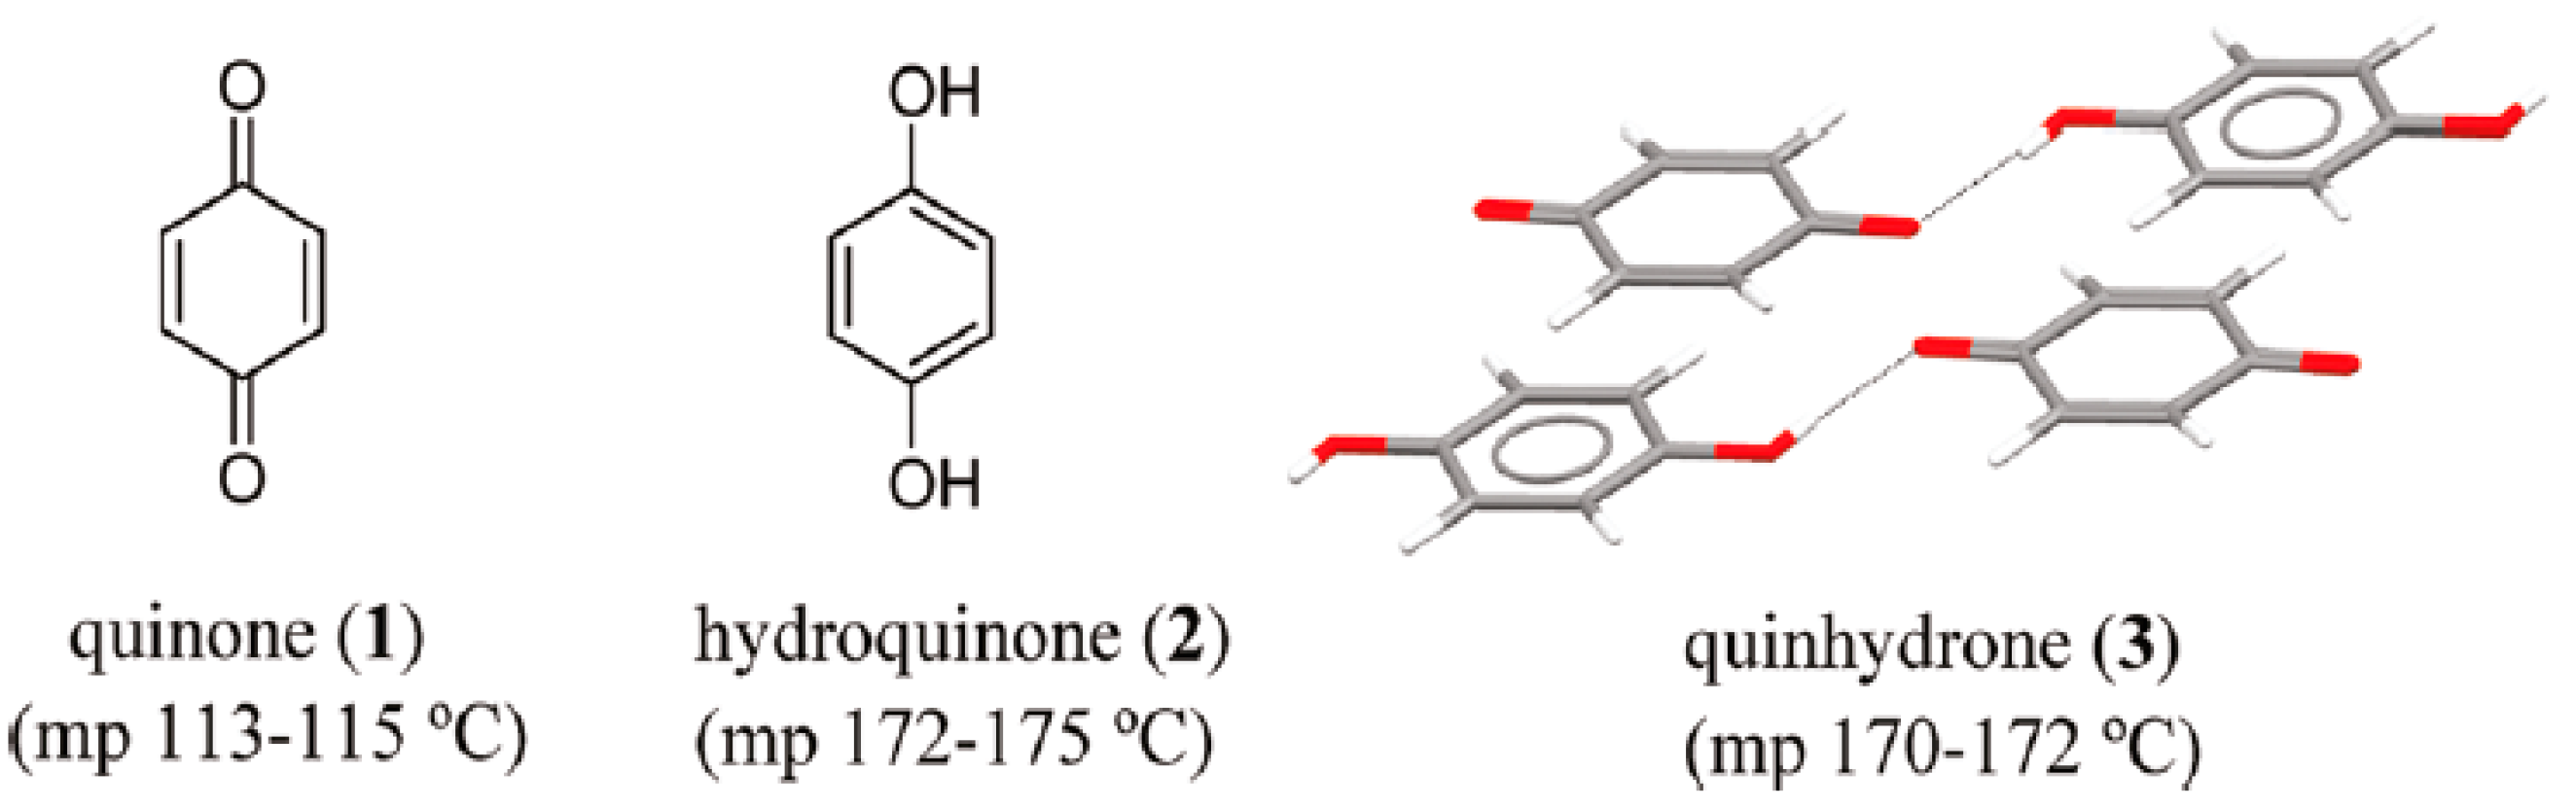 relationship between quinidine and quinine water